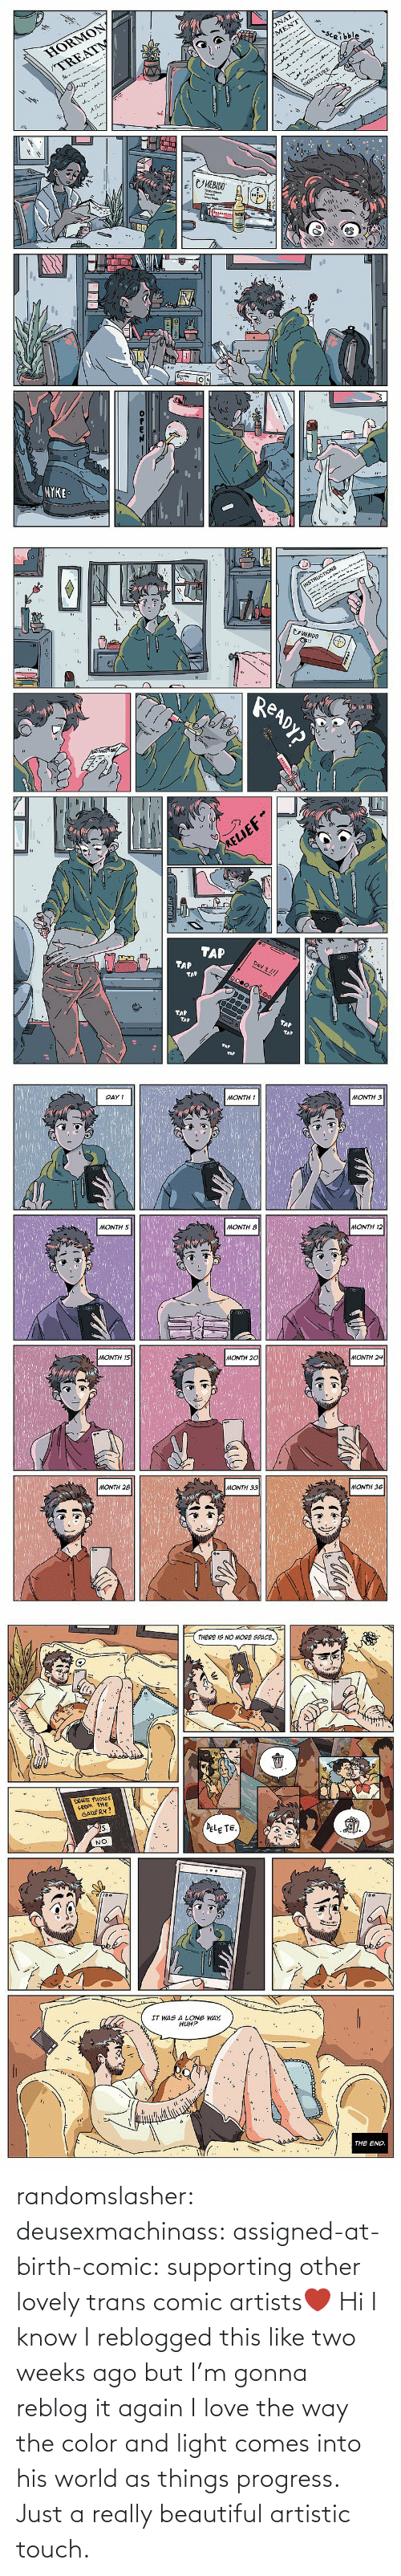 Beautiful, Love, and Tumblr: randomslasher: deusexmachinass:  assigned-at-birth-comic: supporting other lovely trans comic artists❤  Hi I know I reblogged this like two weeks ago but I'm gonna reblog it again  I love the way the color and light comes into his world as things progress. Just a really beautiful artistic touch.